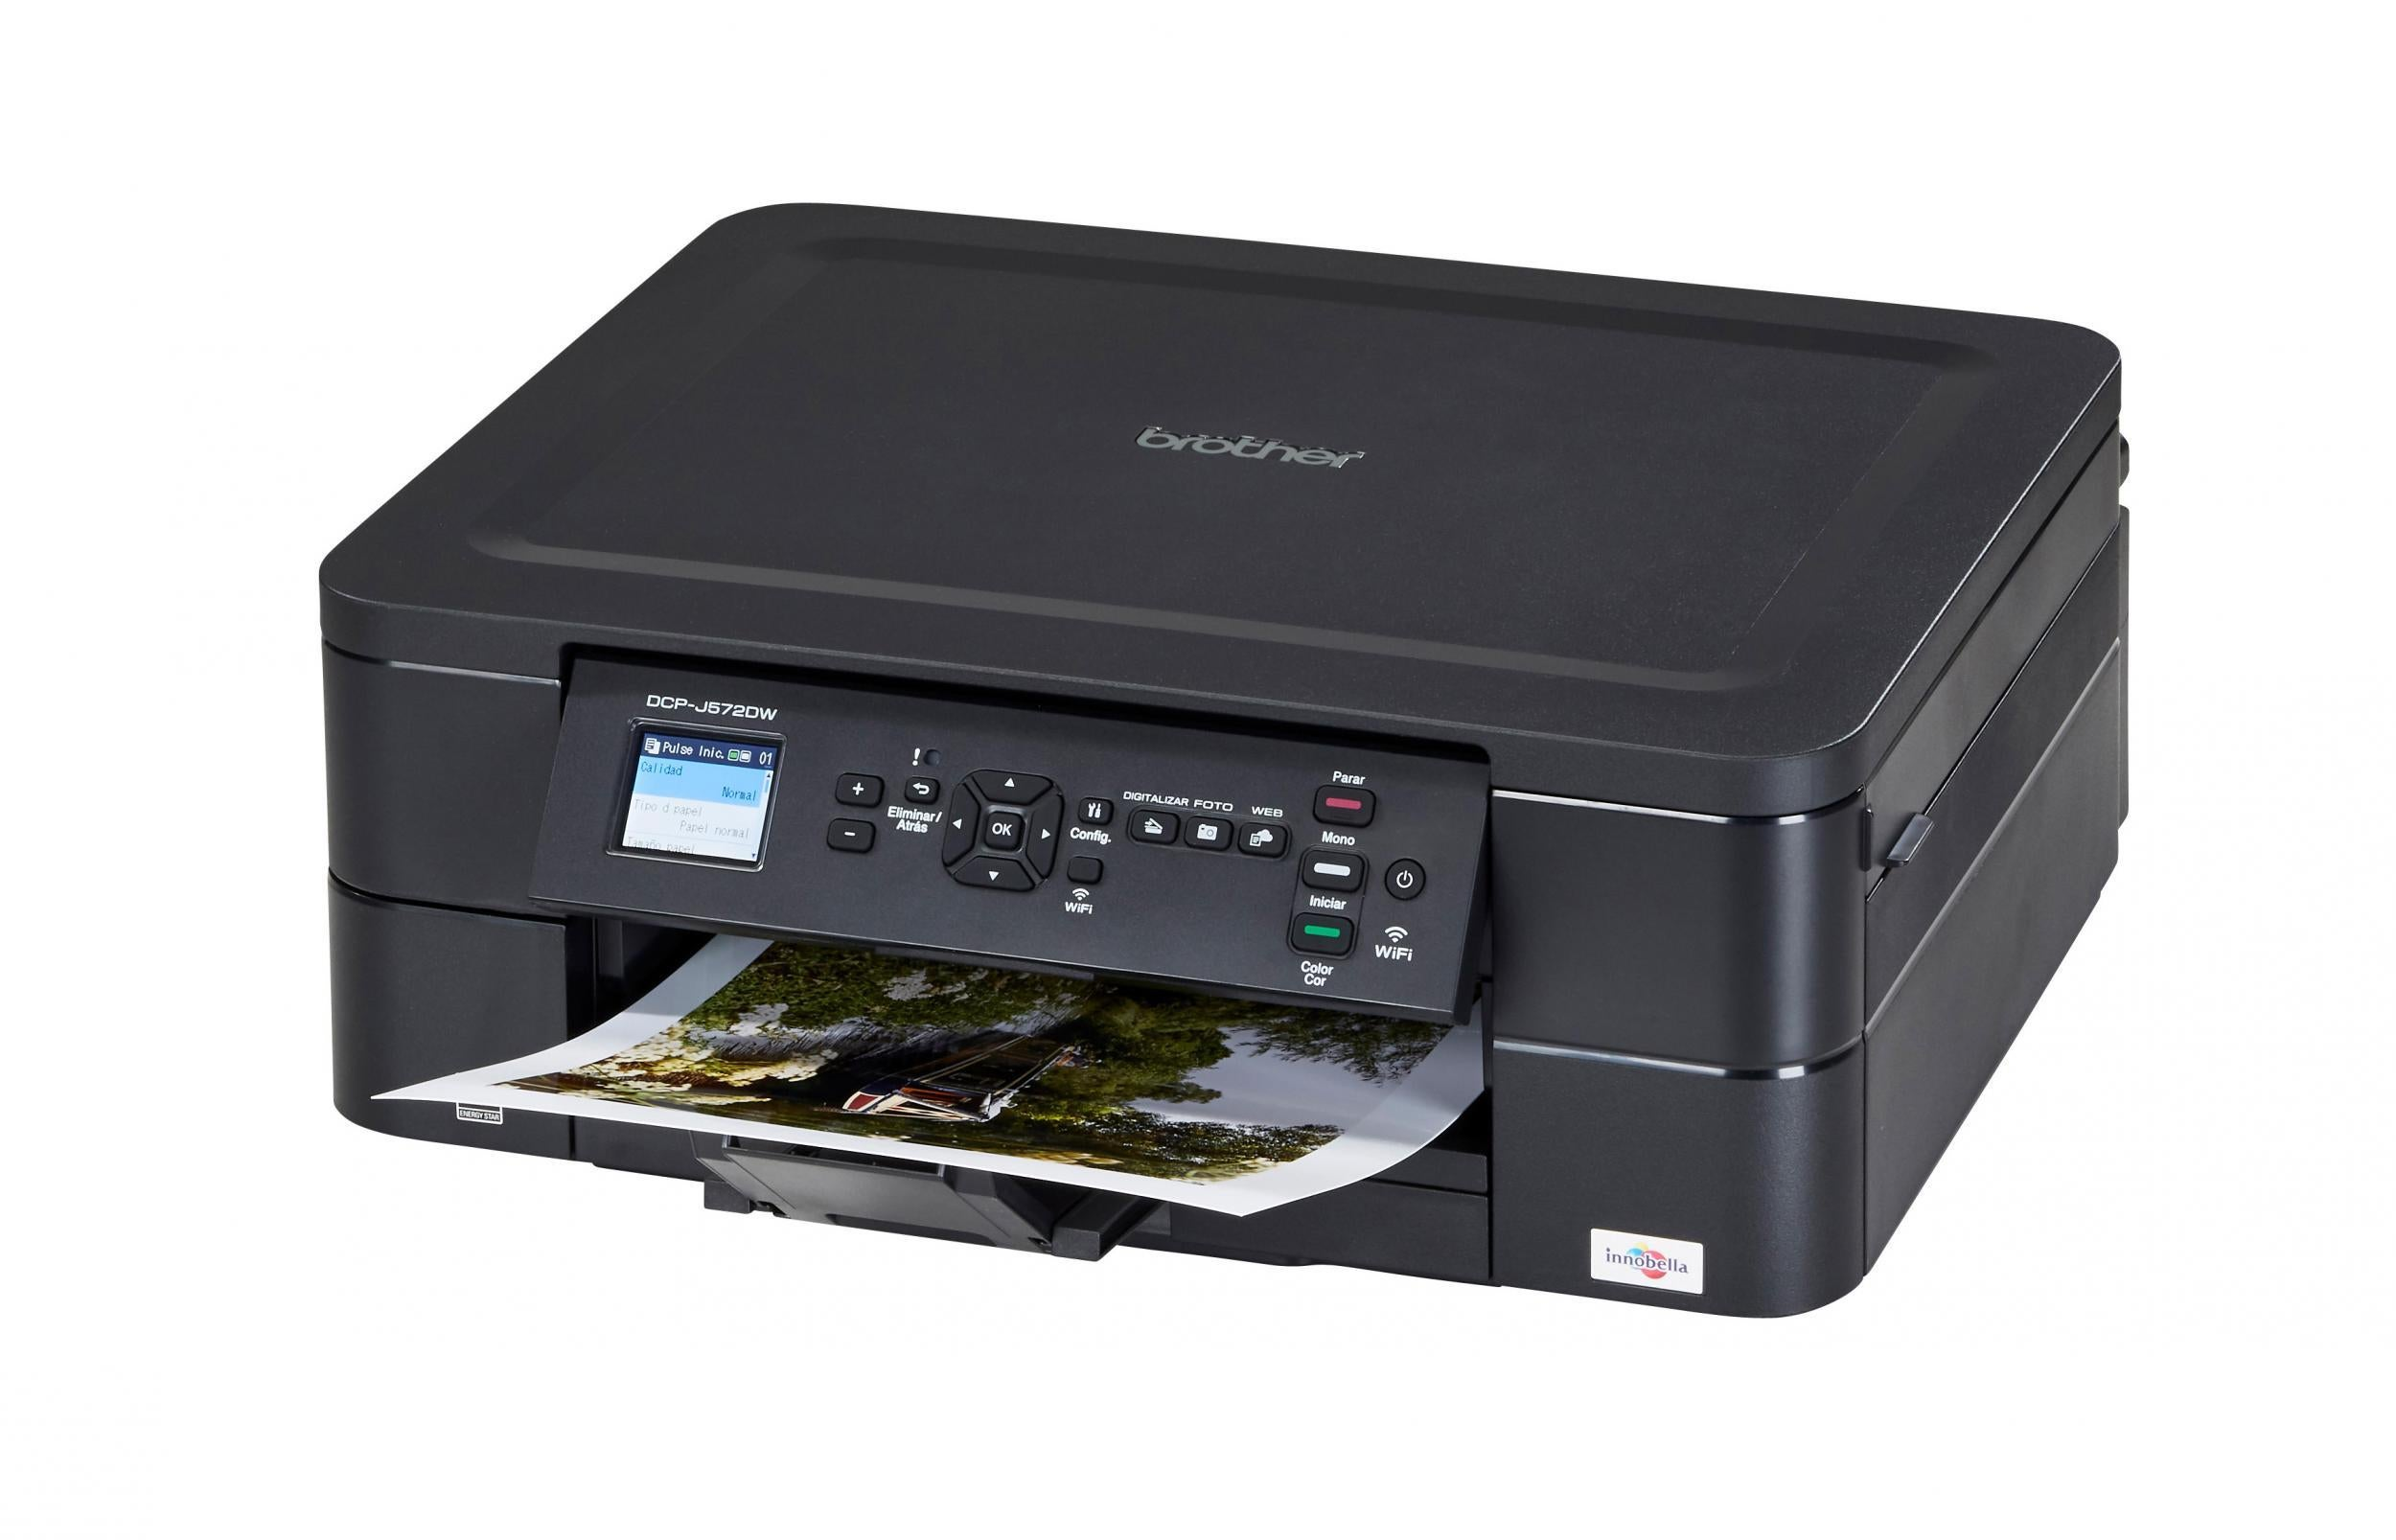 10 best wireless printers that will make your home office admin